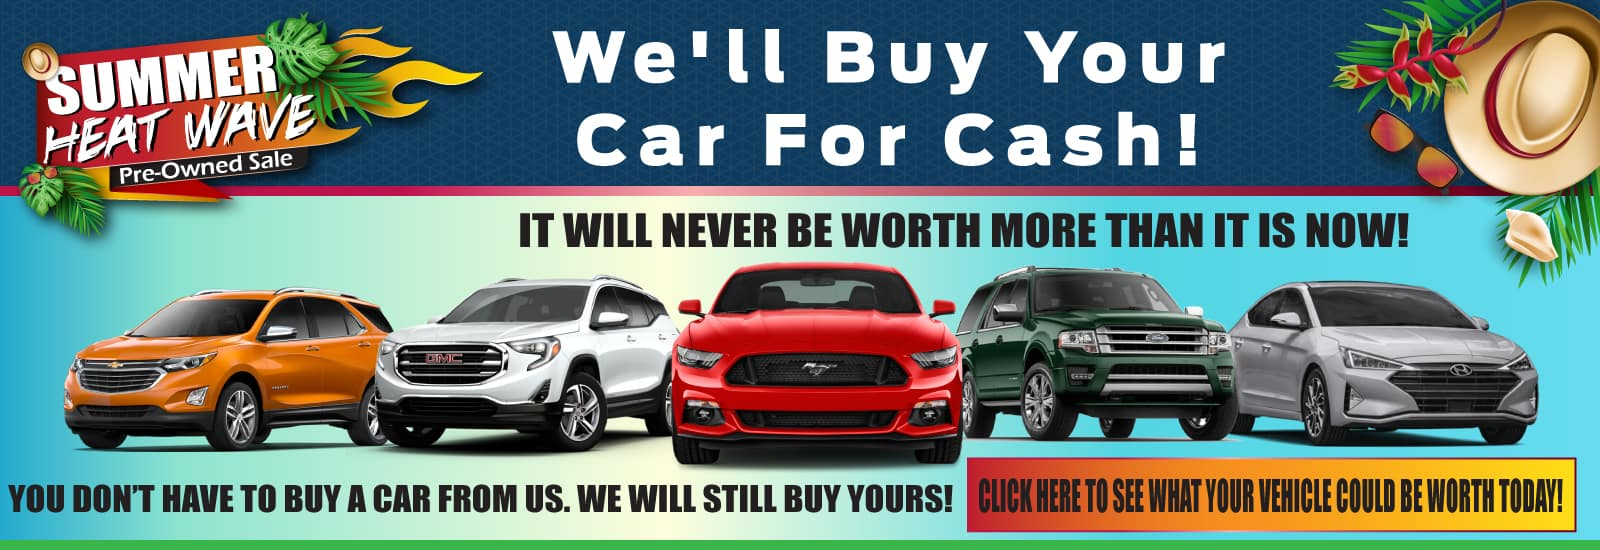 We-Will-Buy-Your-Car-Web-Banner-1600×550 (004) July